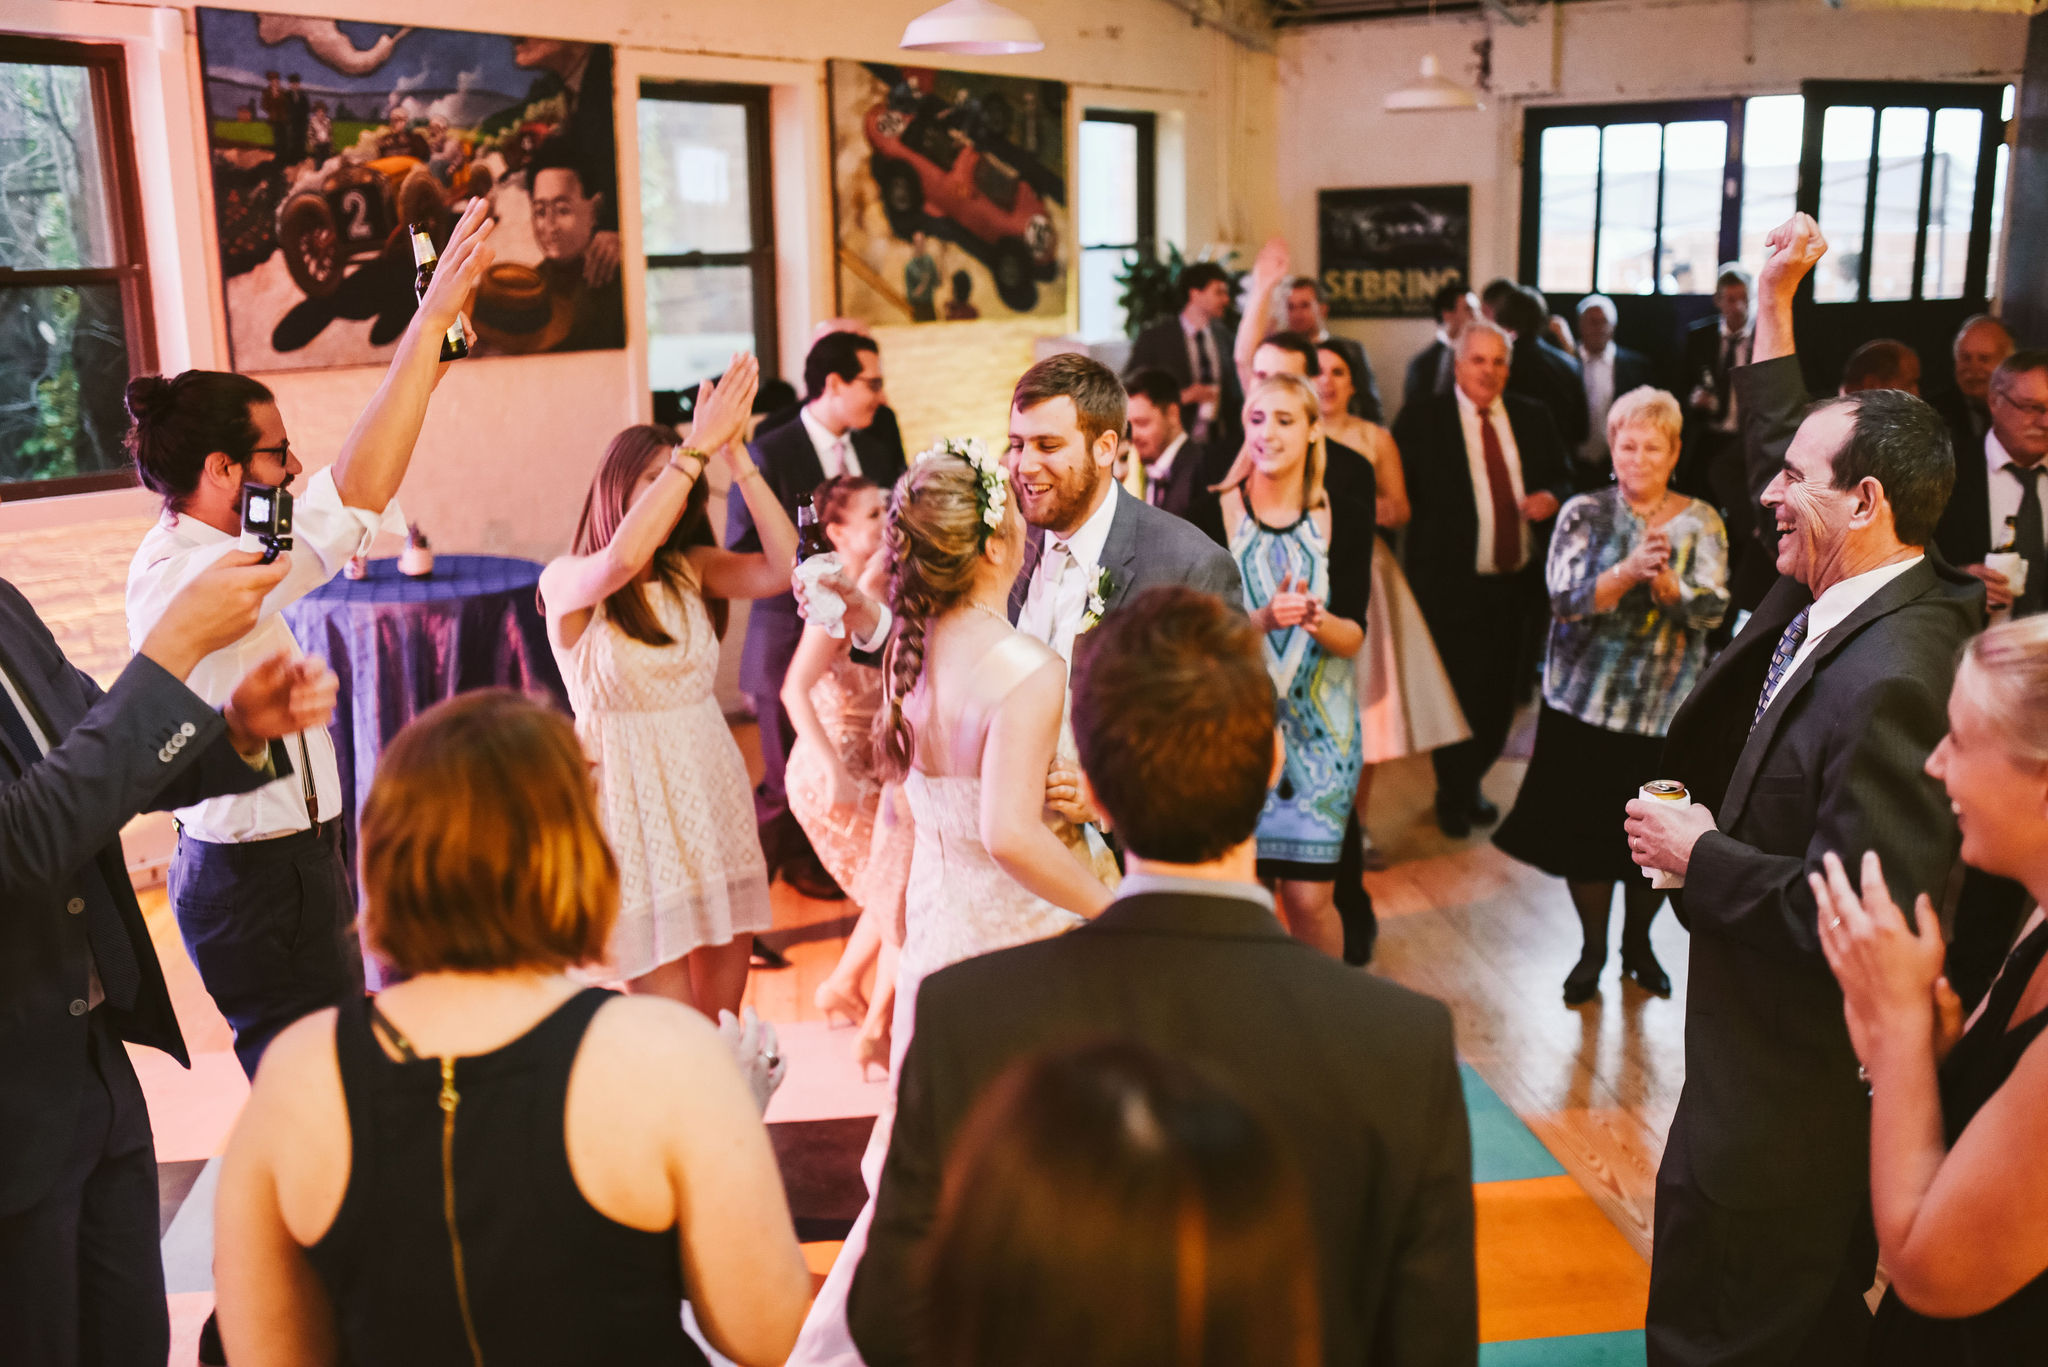 Hampden, Baltimore, Maryland Wedding Photographer, Garden Wedding, Classic, DIY, Romantic, Bride and groom Dancing Together Surrounded by Friends